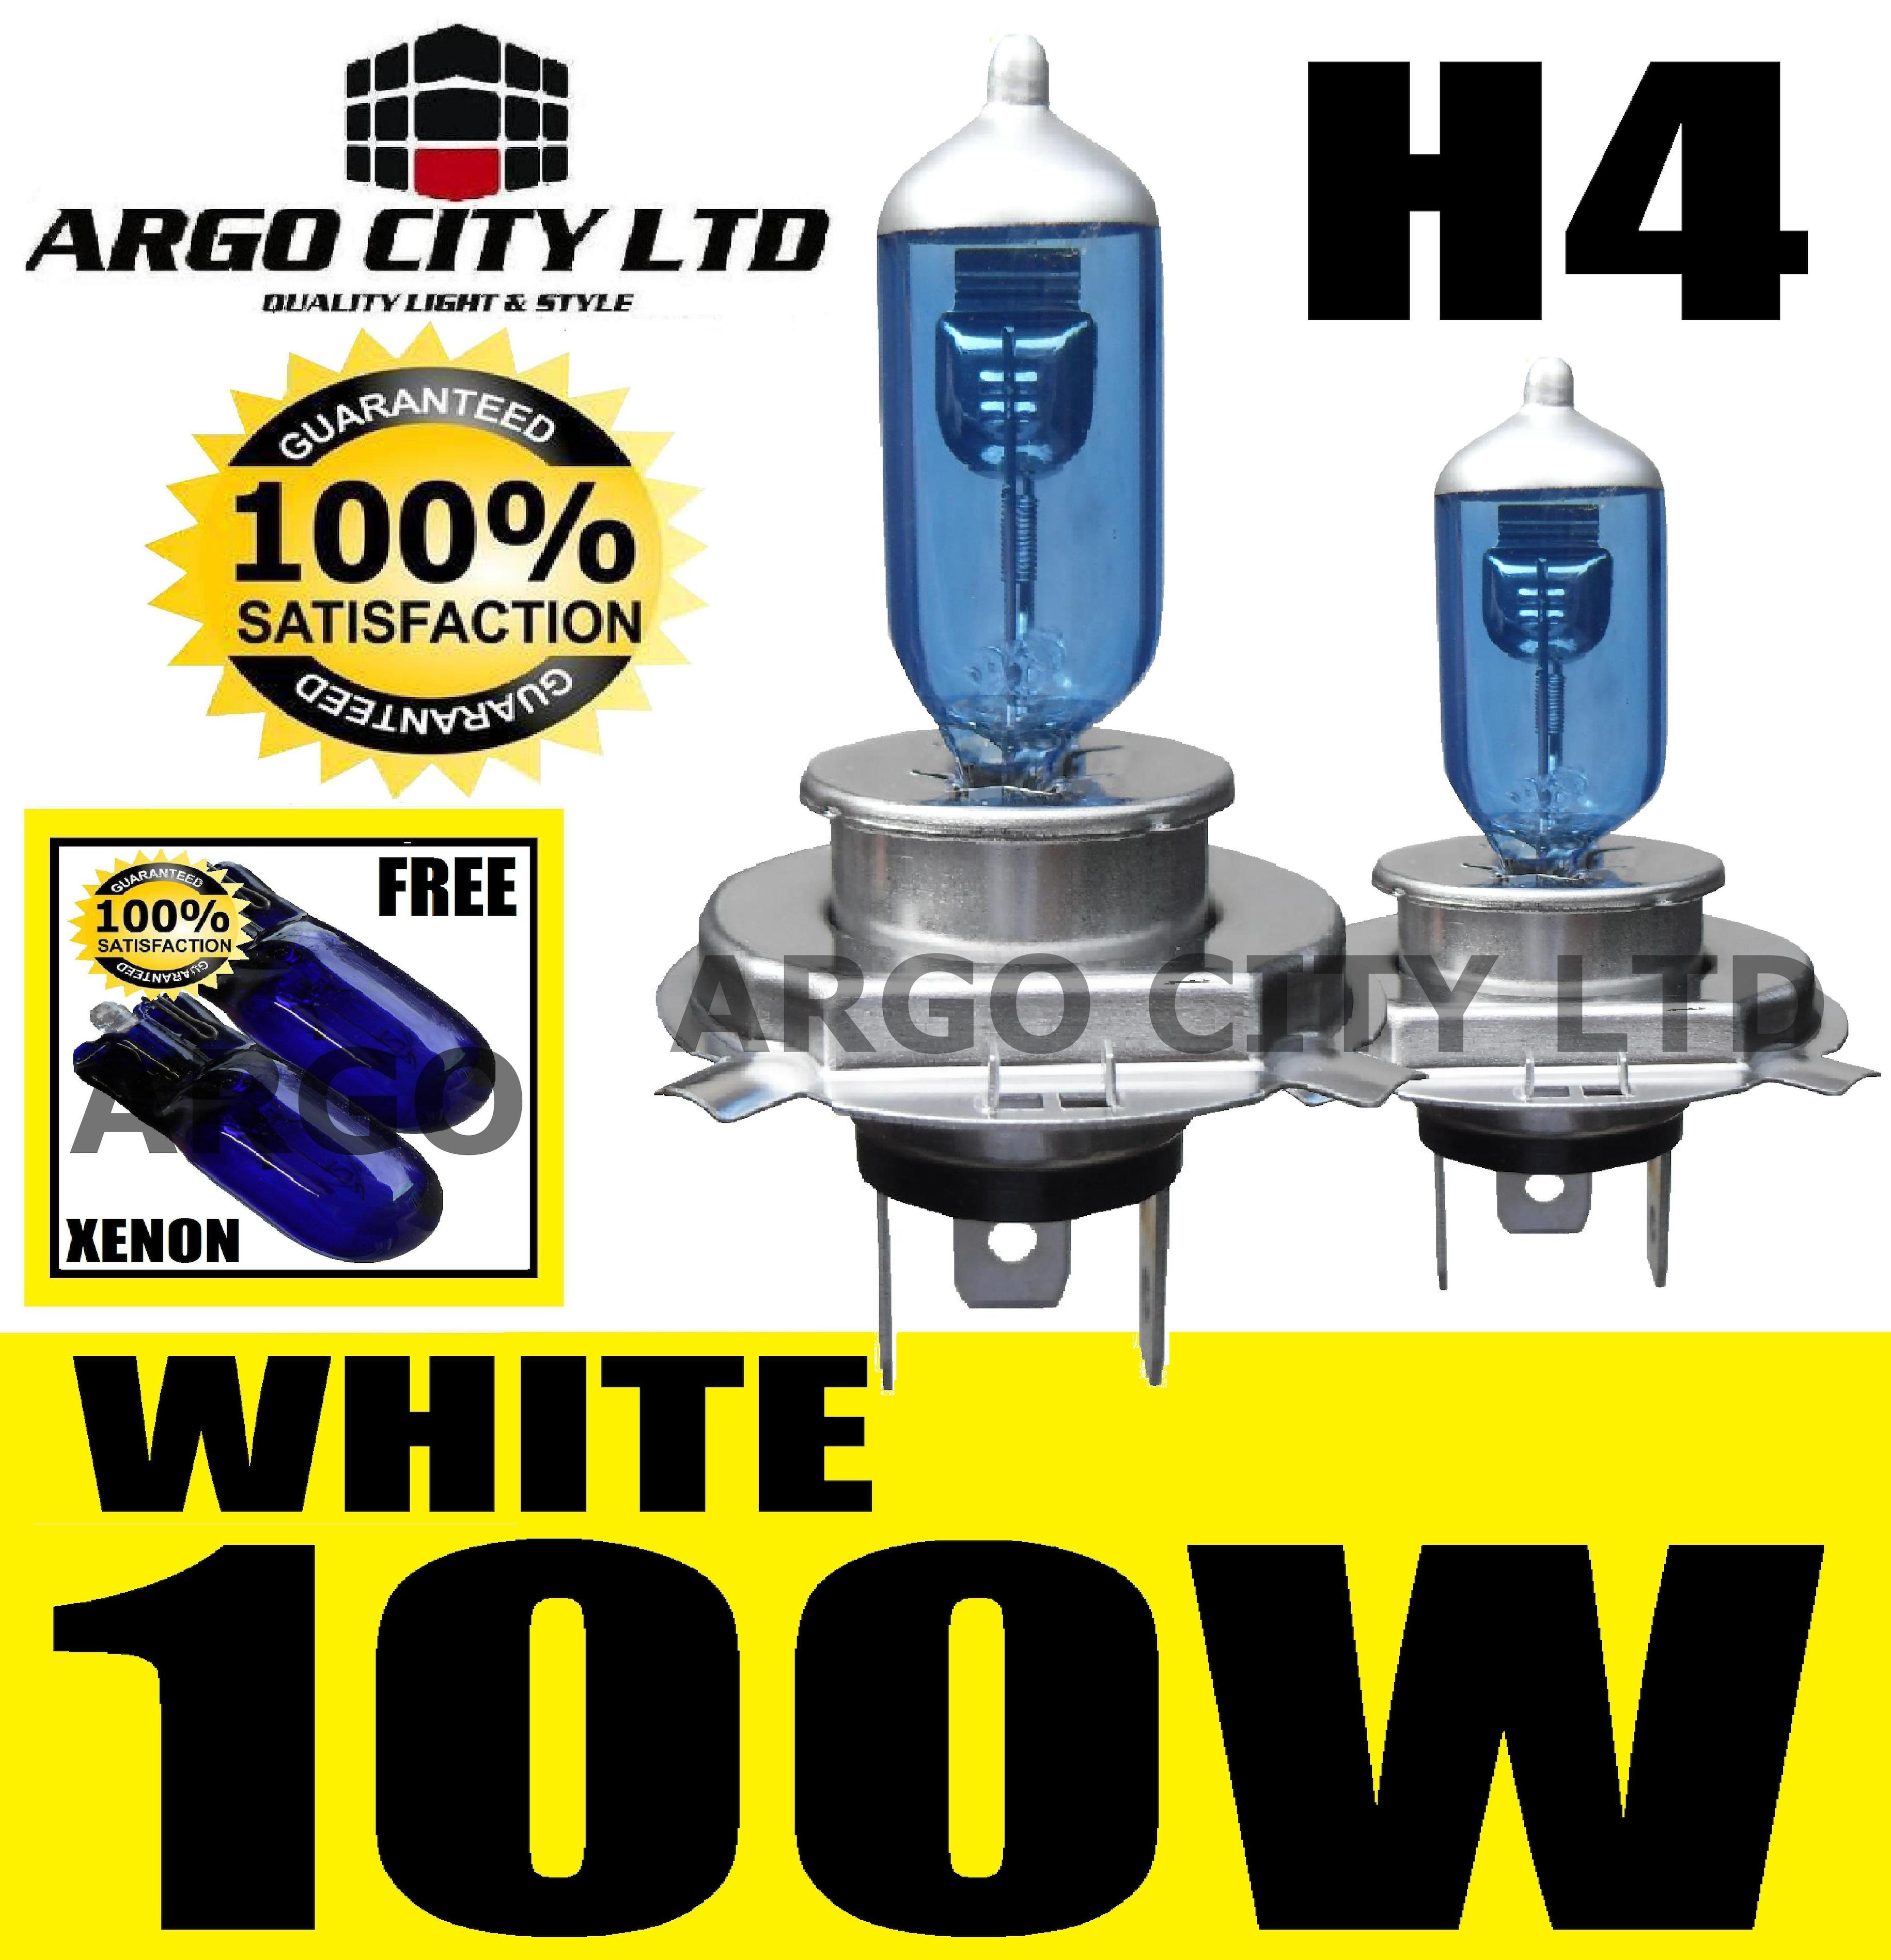 H4 XENON WHITE 100W 472 HEADLIGHT BULBS Renault Trucks Midliner S